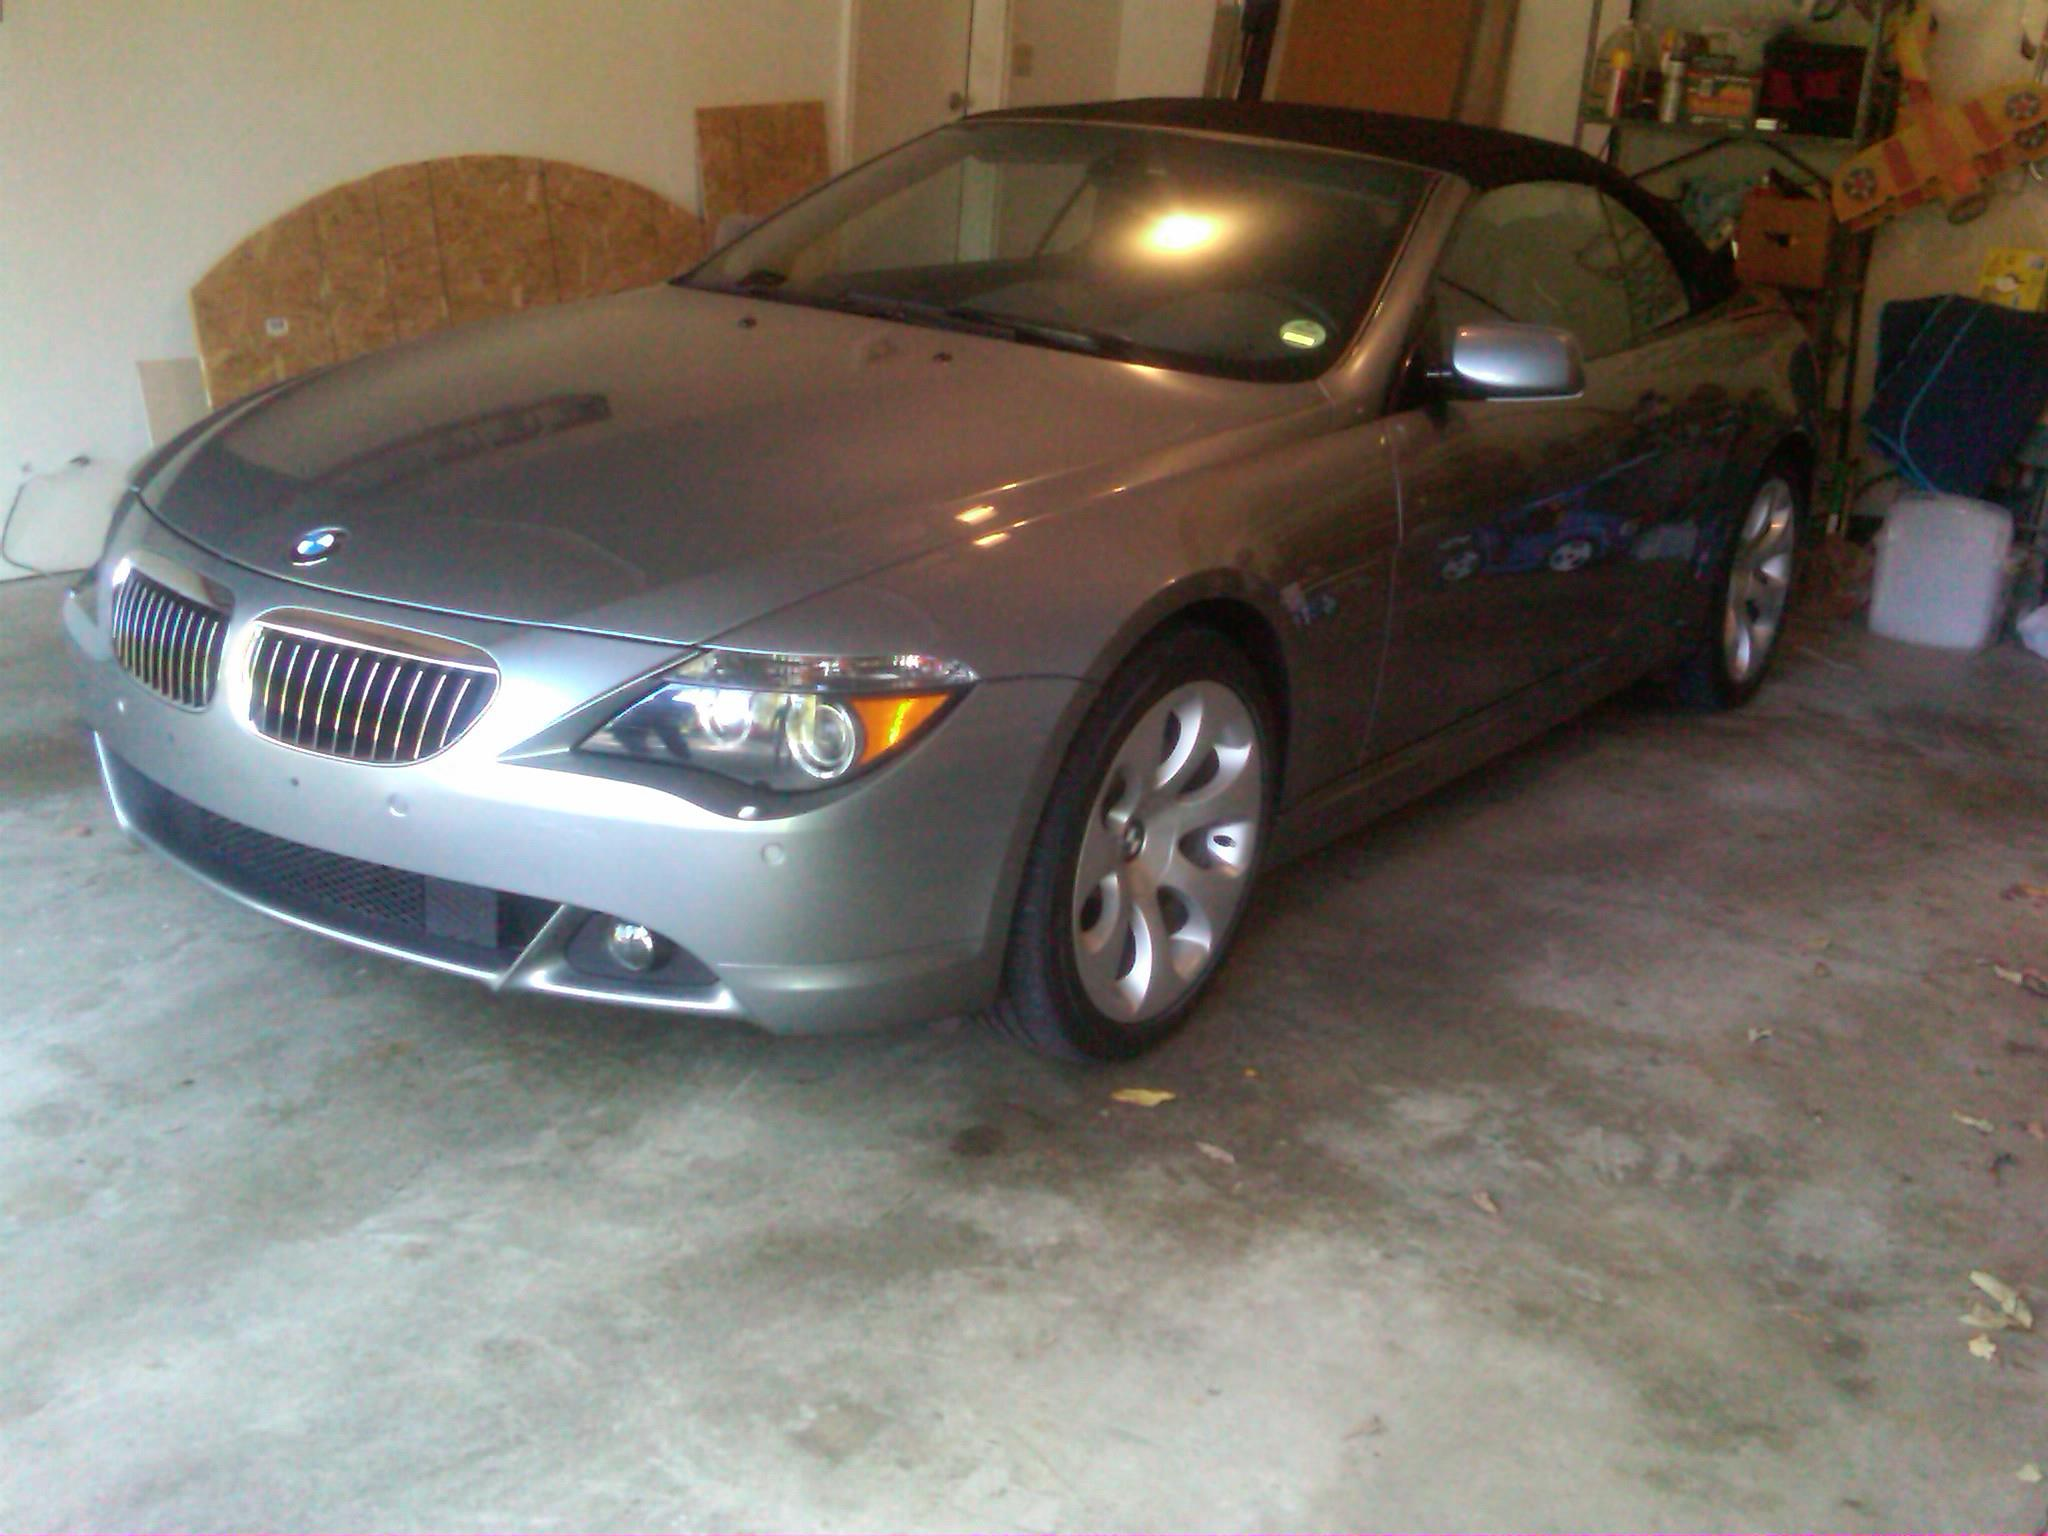 BMW 6 Series Gets Paint Protection Film